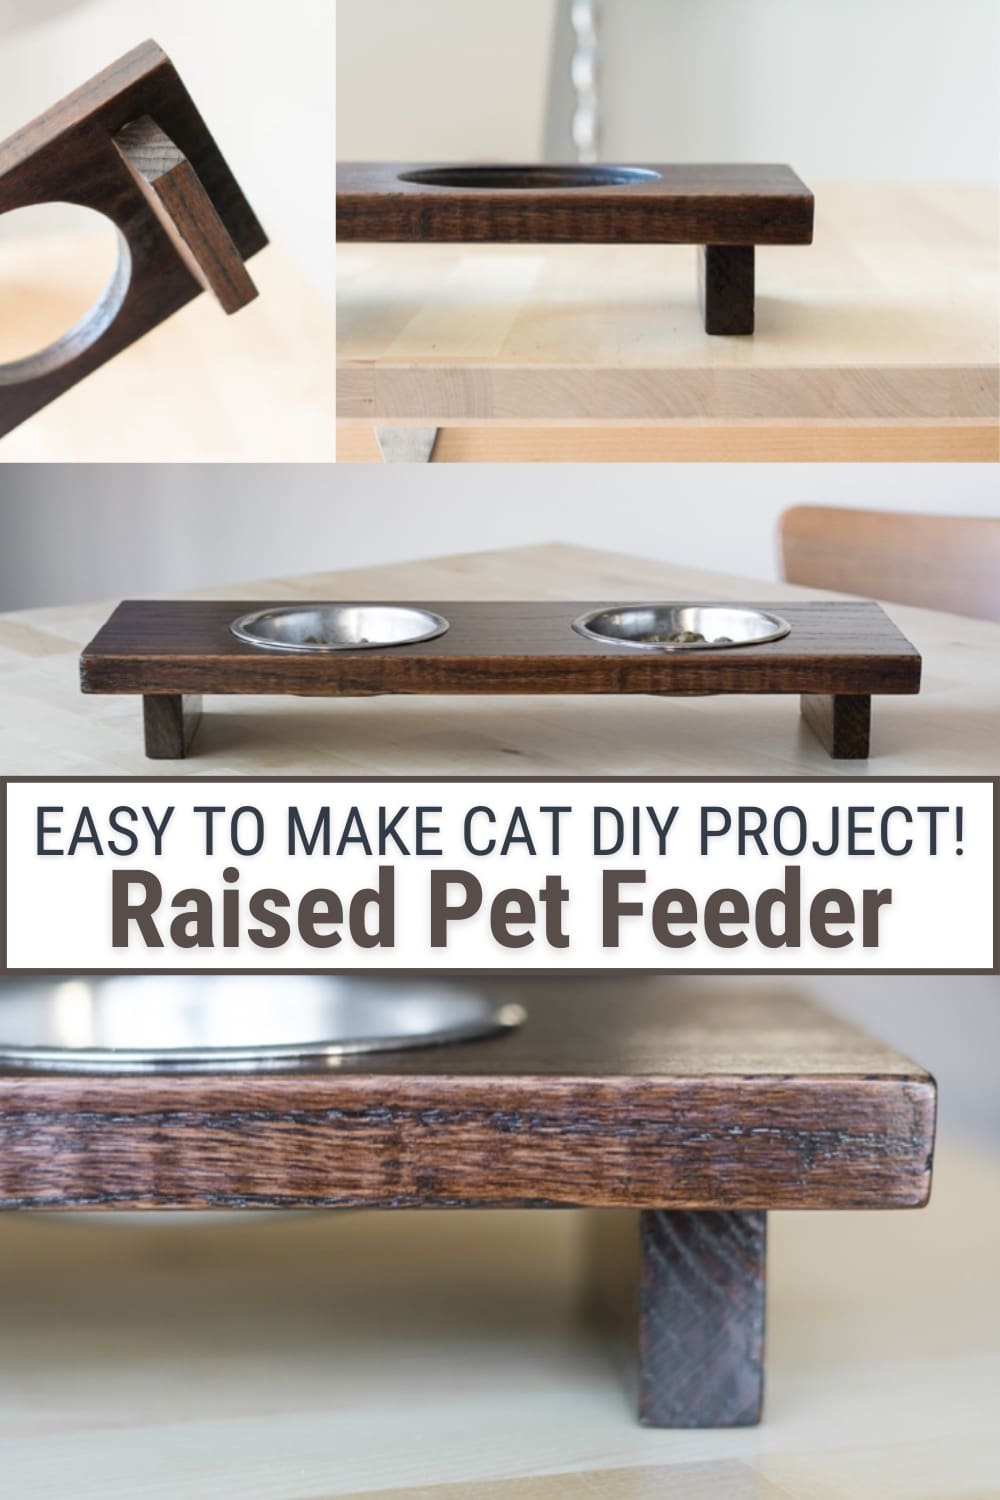 image collage of raised pet feeder with text Easy to Make Cat DIY Project! Raised Pet Feeder